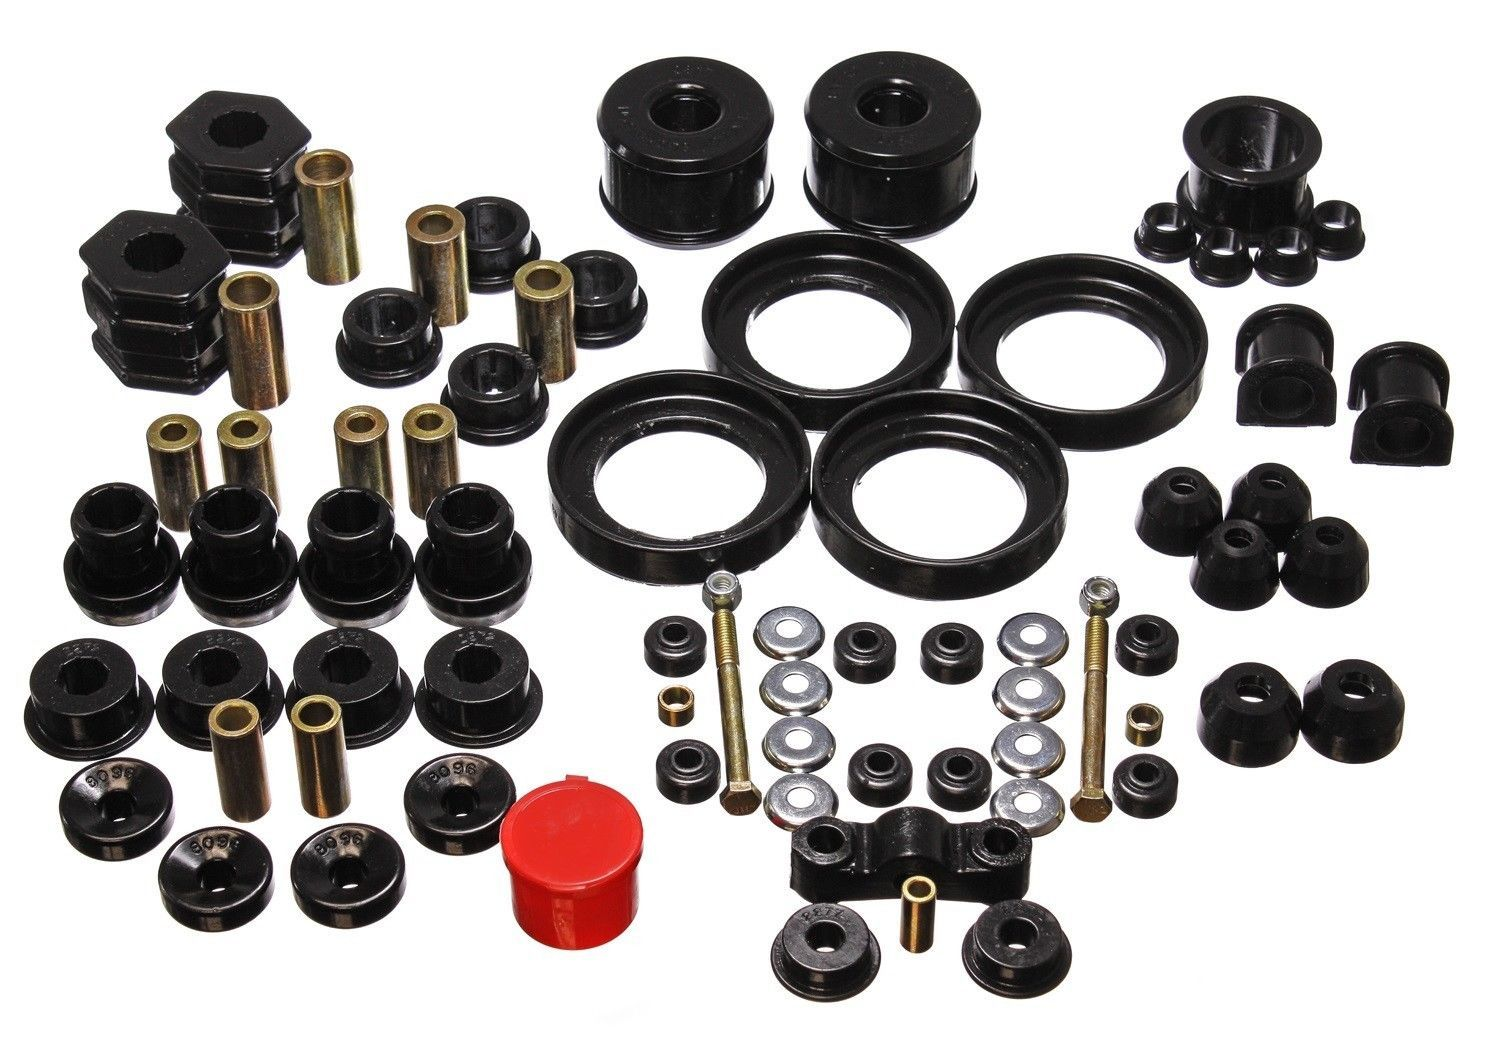 Energy Suspension Bushing KitHyper-Flex System 16.18110G-96-00 Honda Civic Black - $175.00